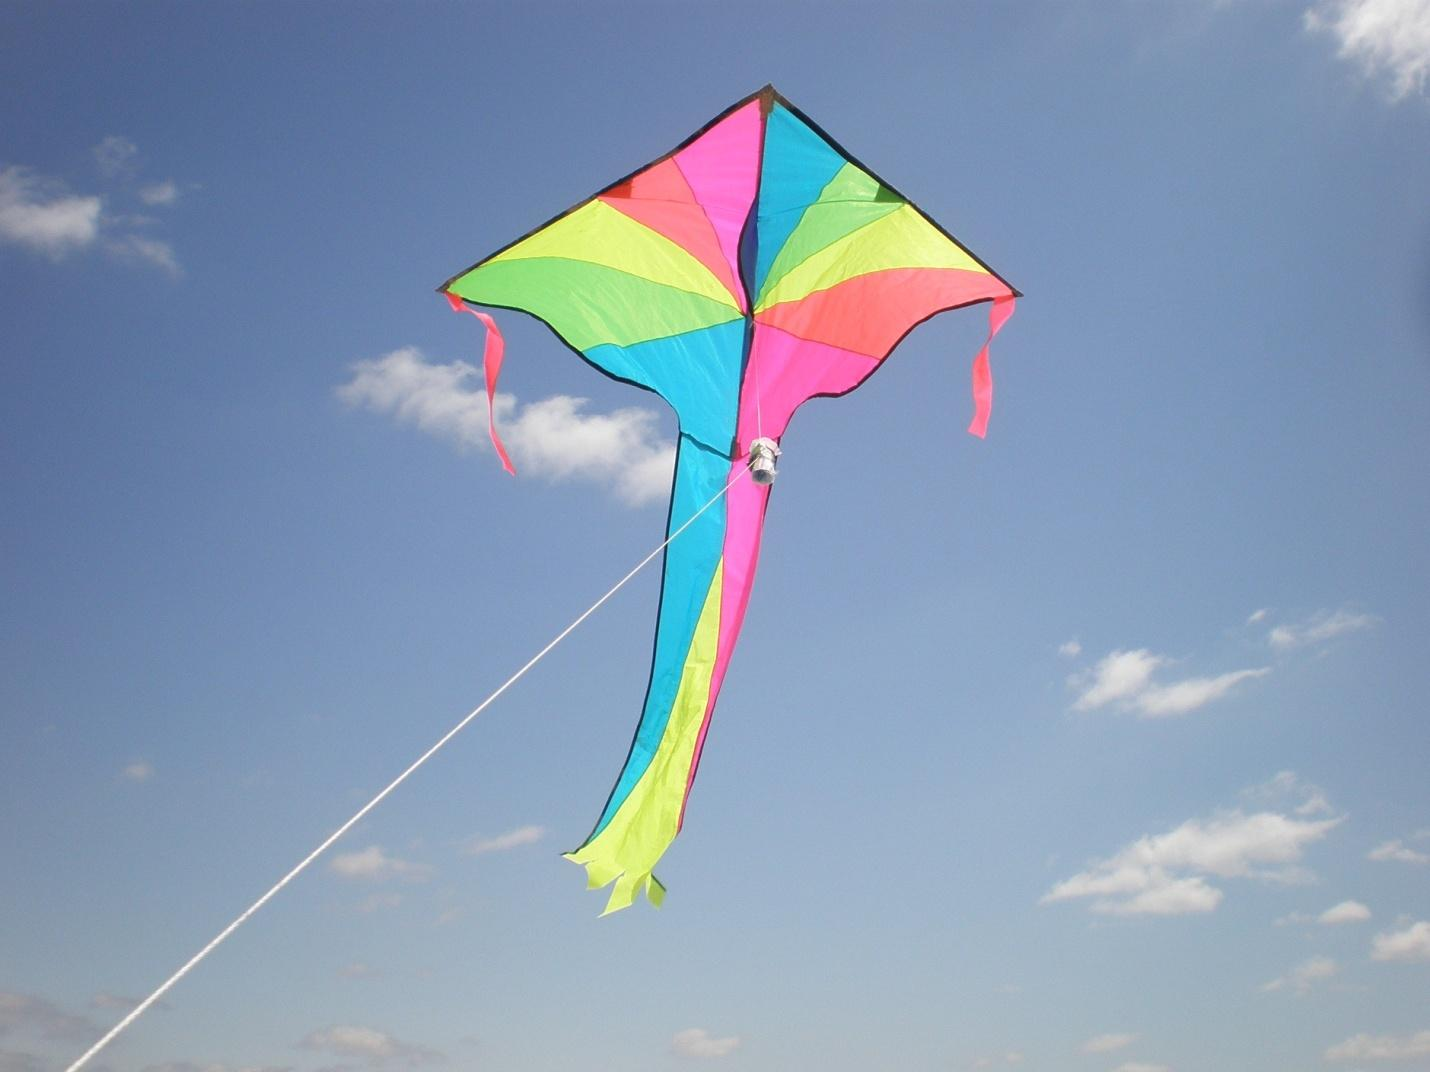 Camaraderie Its Kite Flying Time